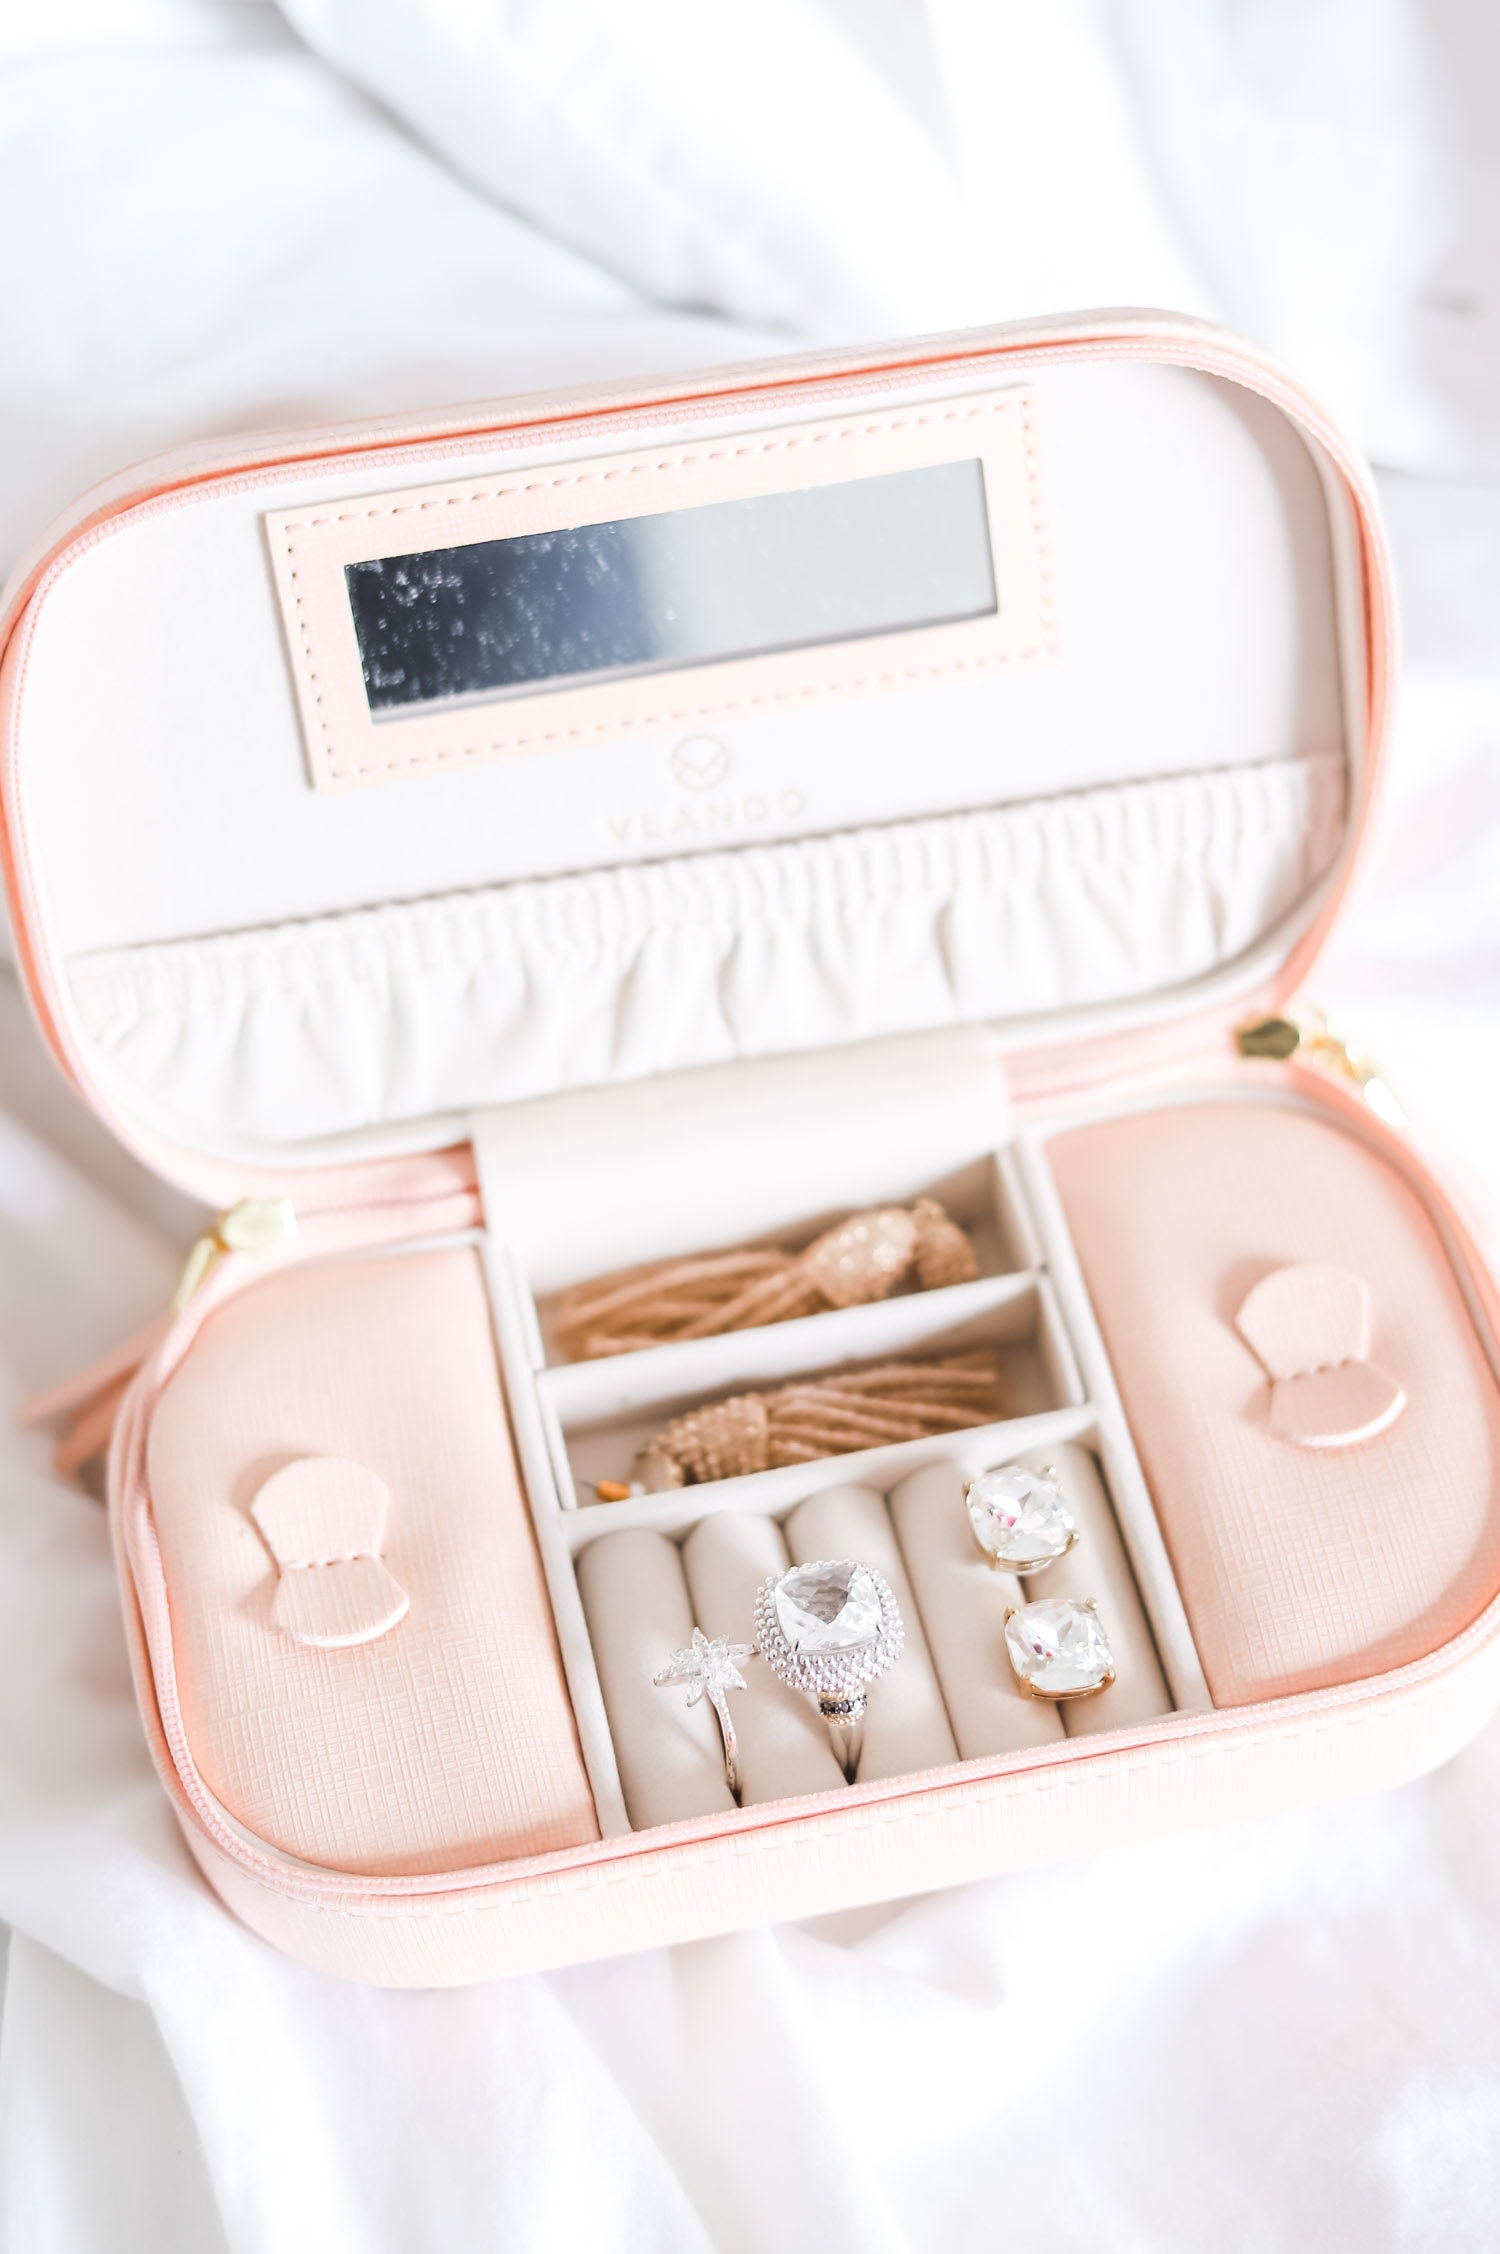 What to Buy On Amazon: the top beauty and fashion bestsellers from Amazon Prime - including the cutest travel jewelry organizer under $20! | Orlando, Florida beauty and fashion blogger Ashley Brooke Nicholas